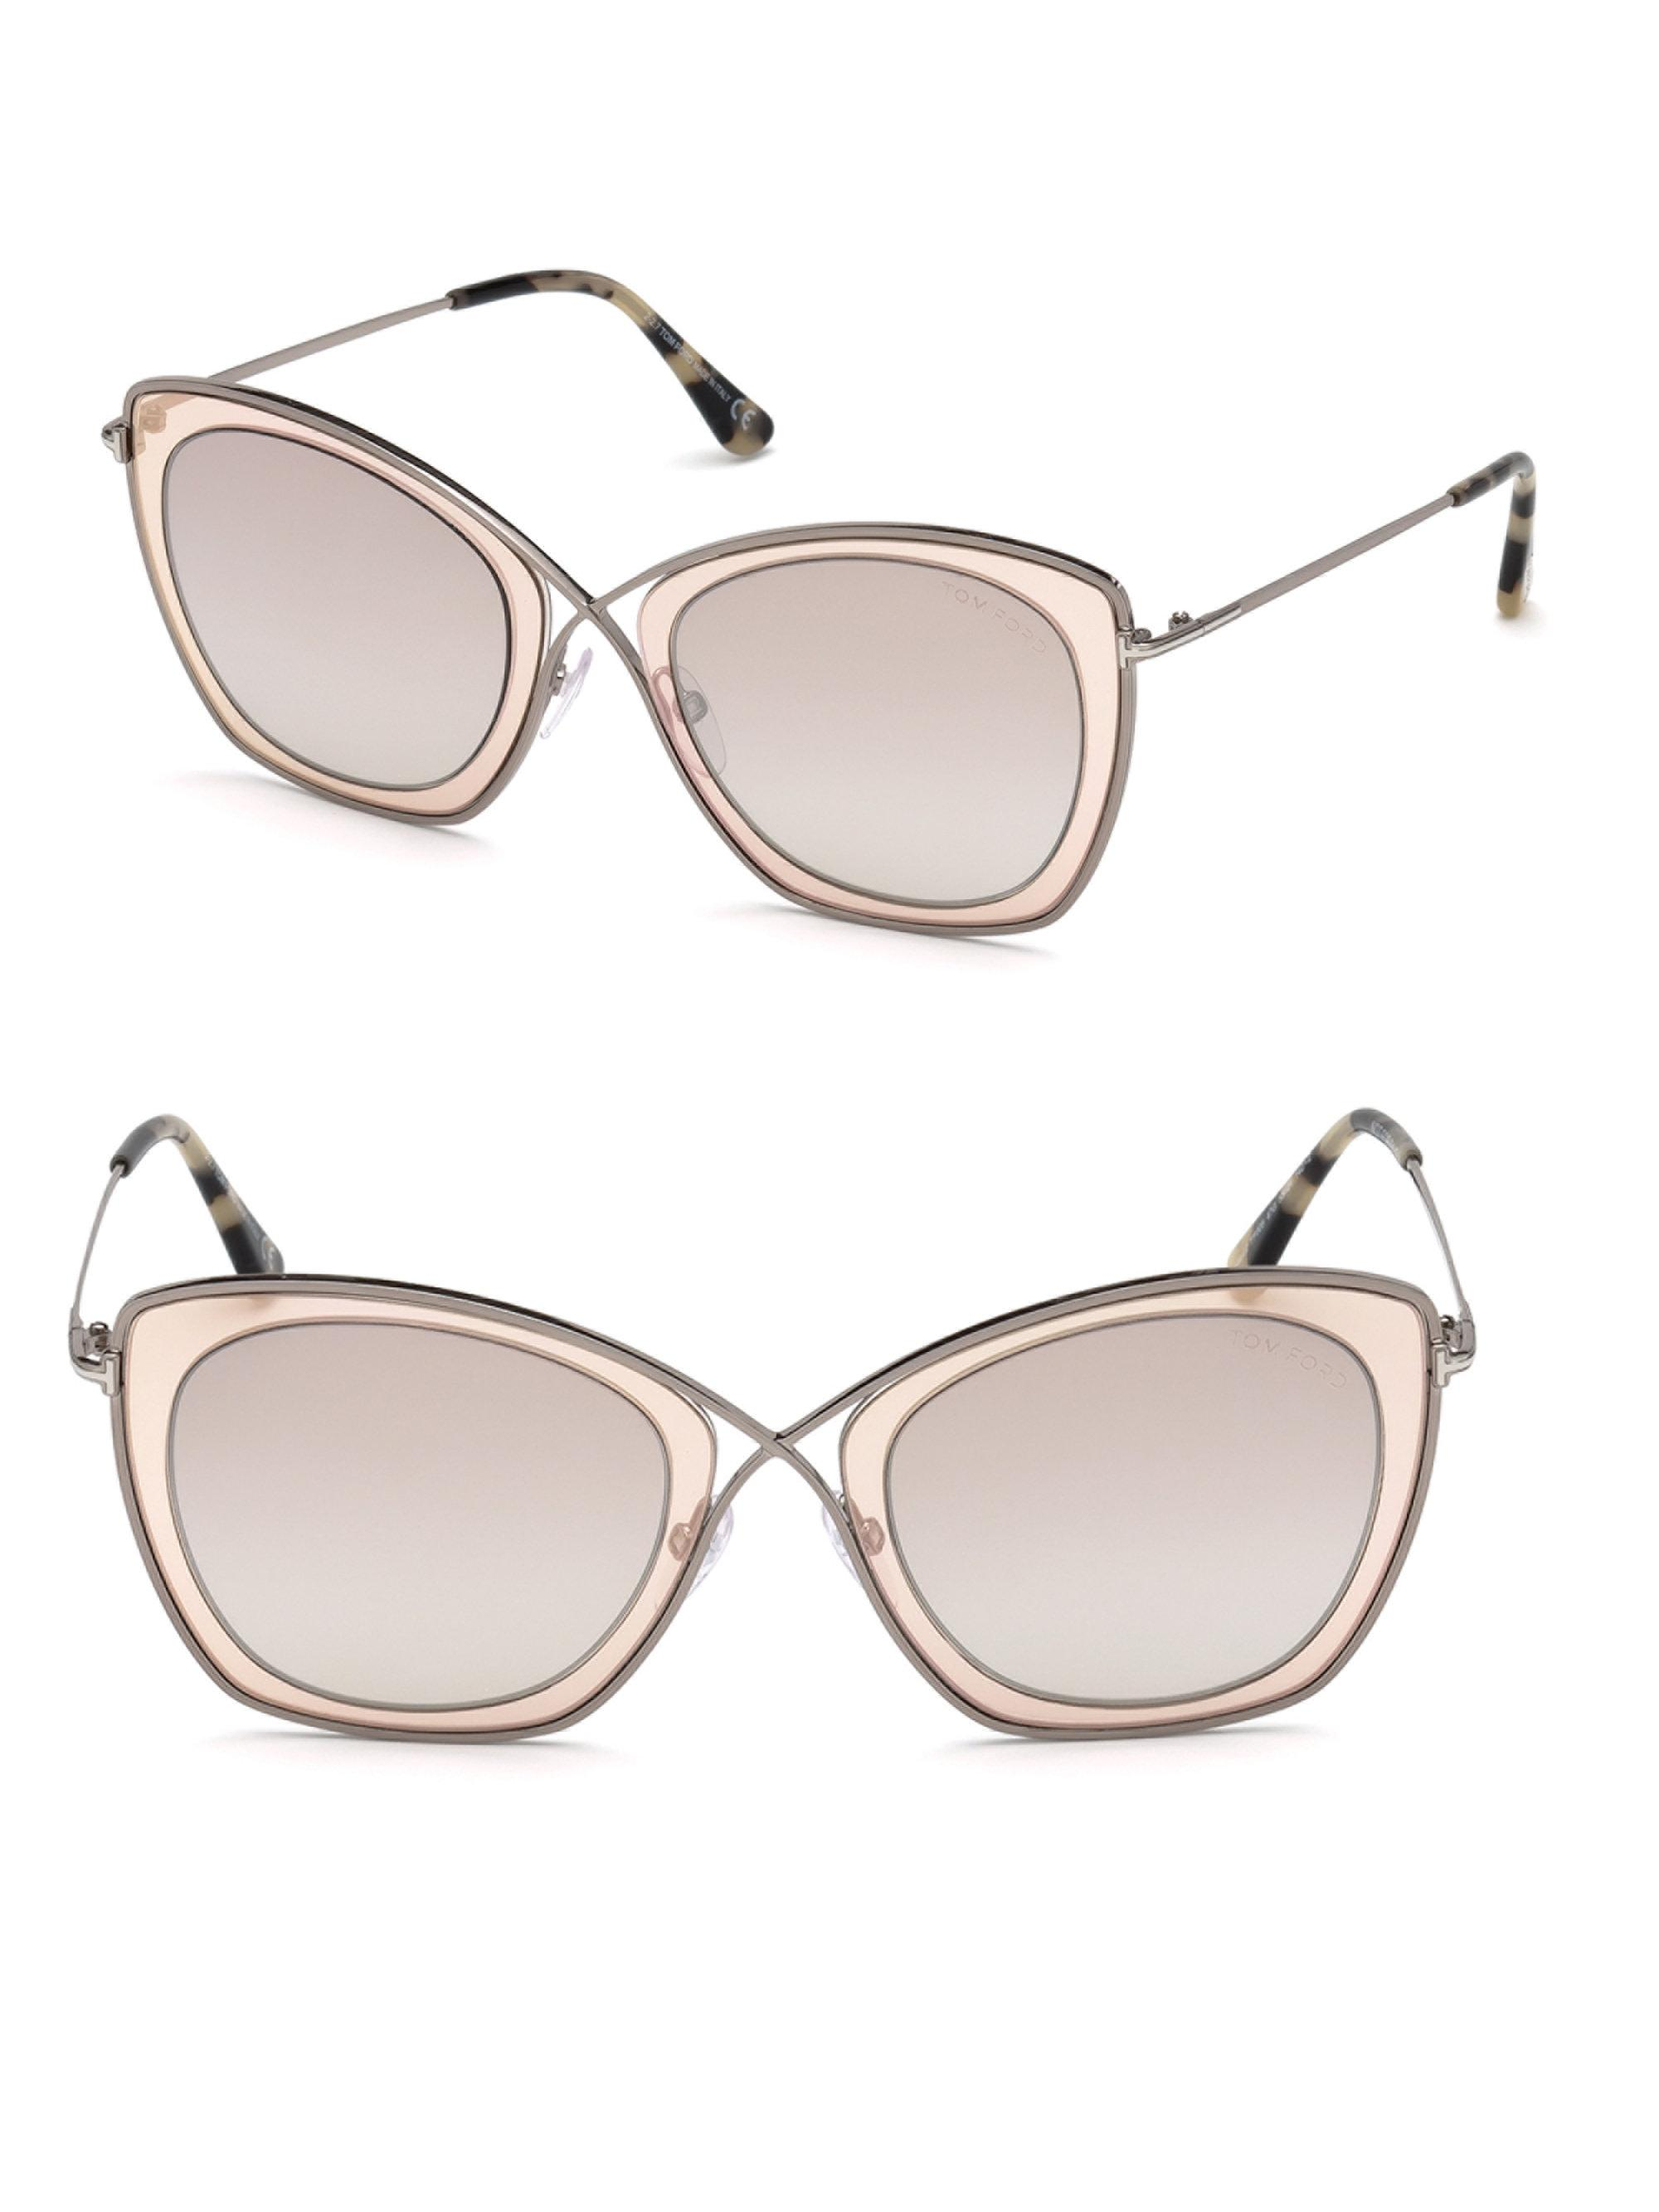 a771ec6d96 Lyst - Tom Ford 0605 India Rectangle Sunglasses in Brown